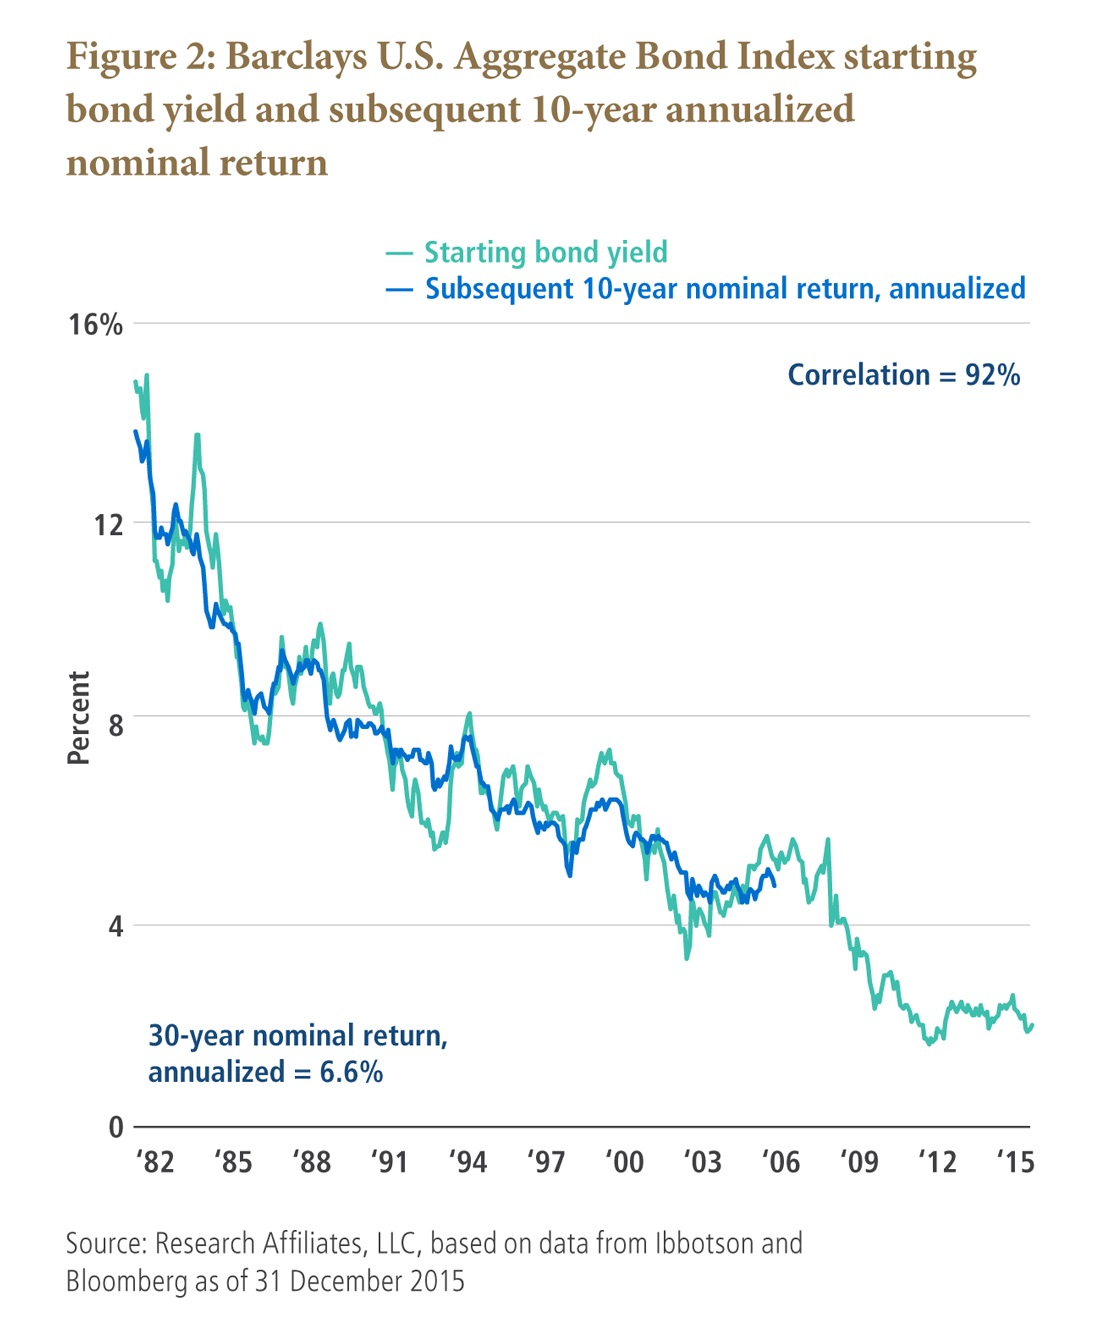 Barclays U.S. Aggregate Bond Index starting bond yield and subsequent 10-year annualized nominal return